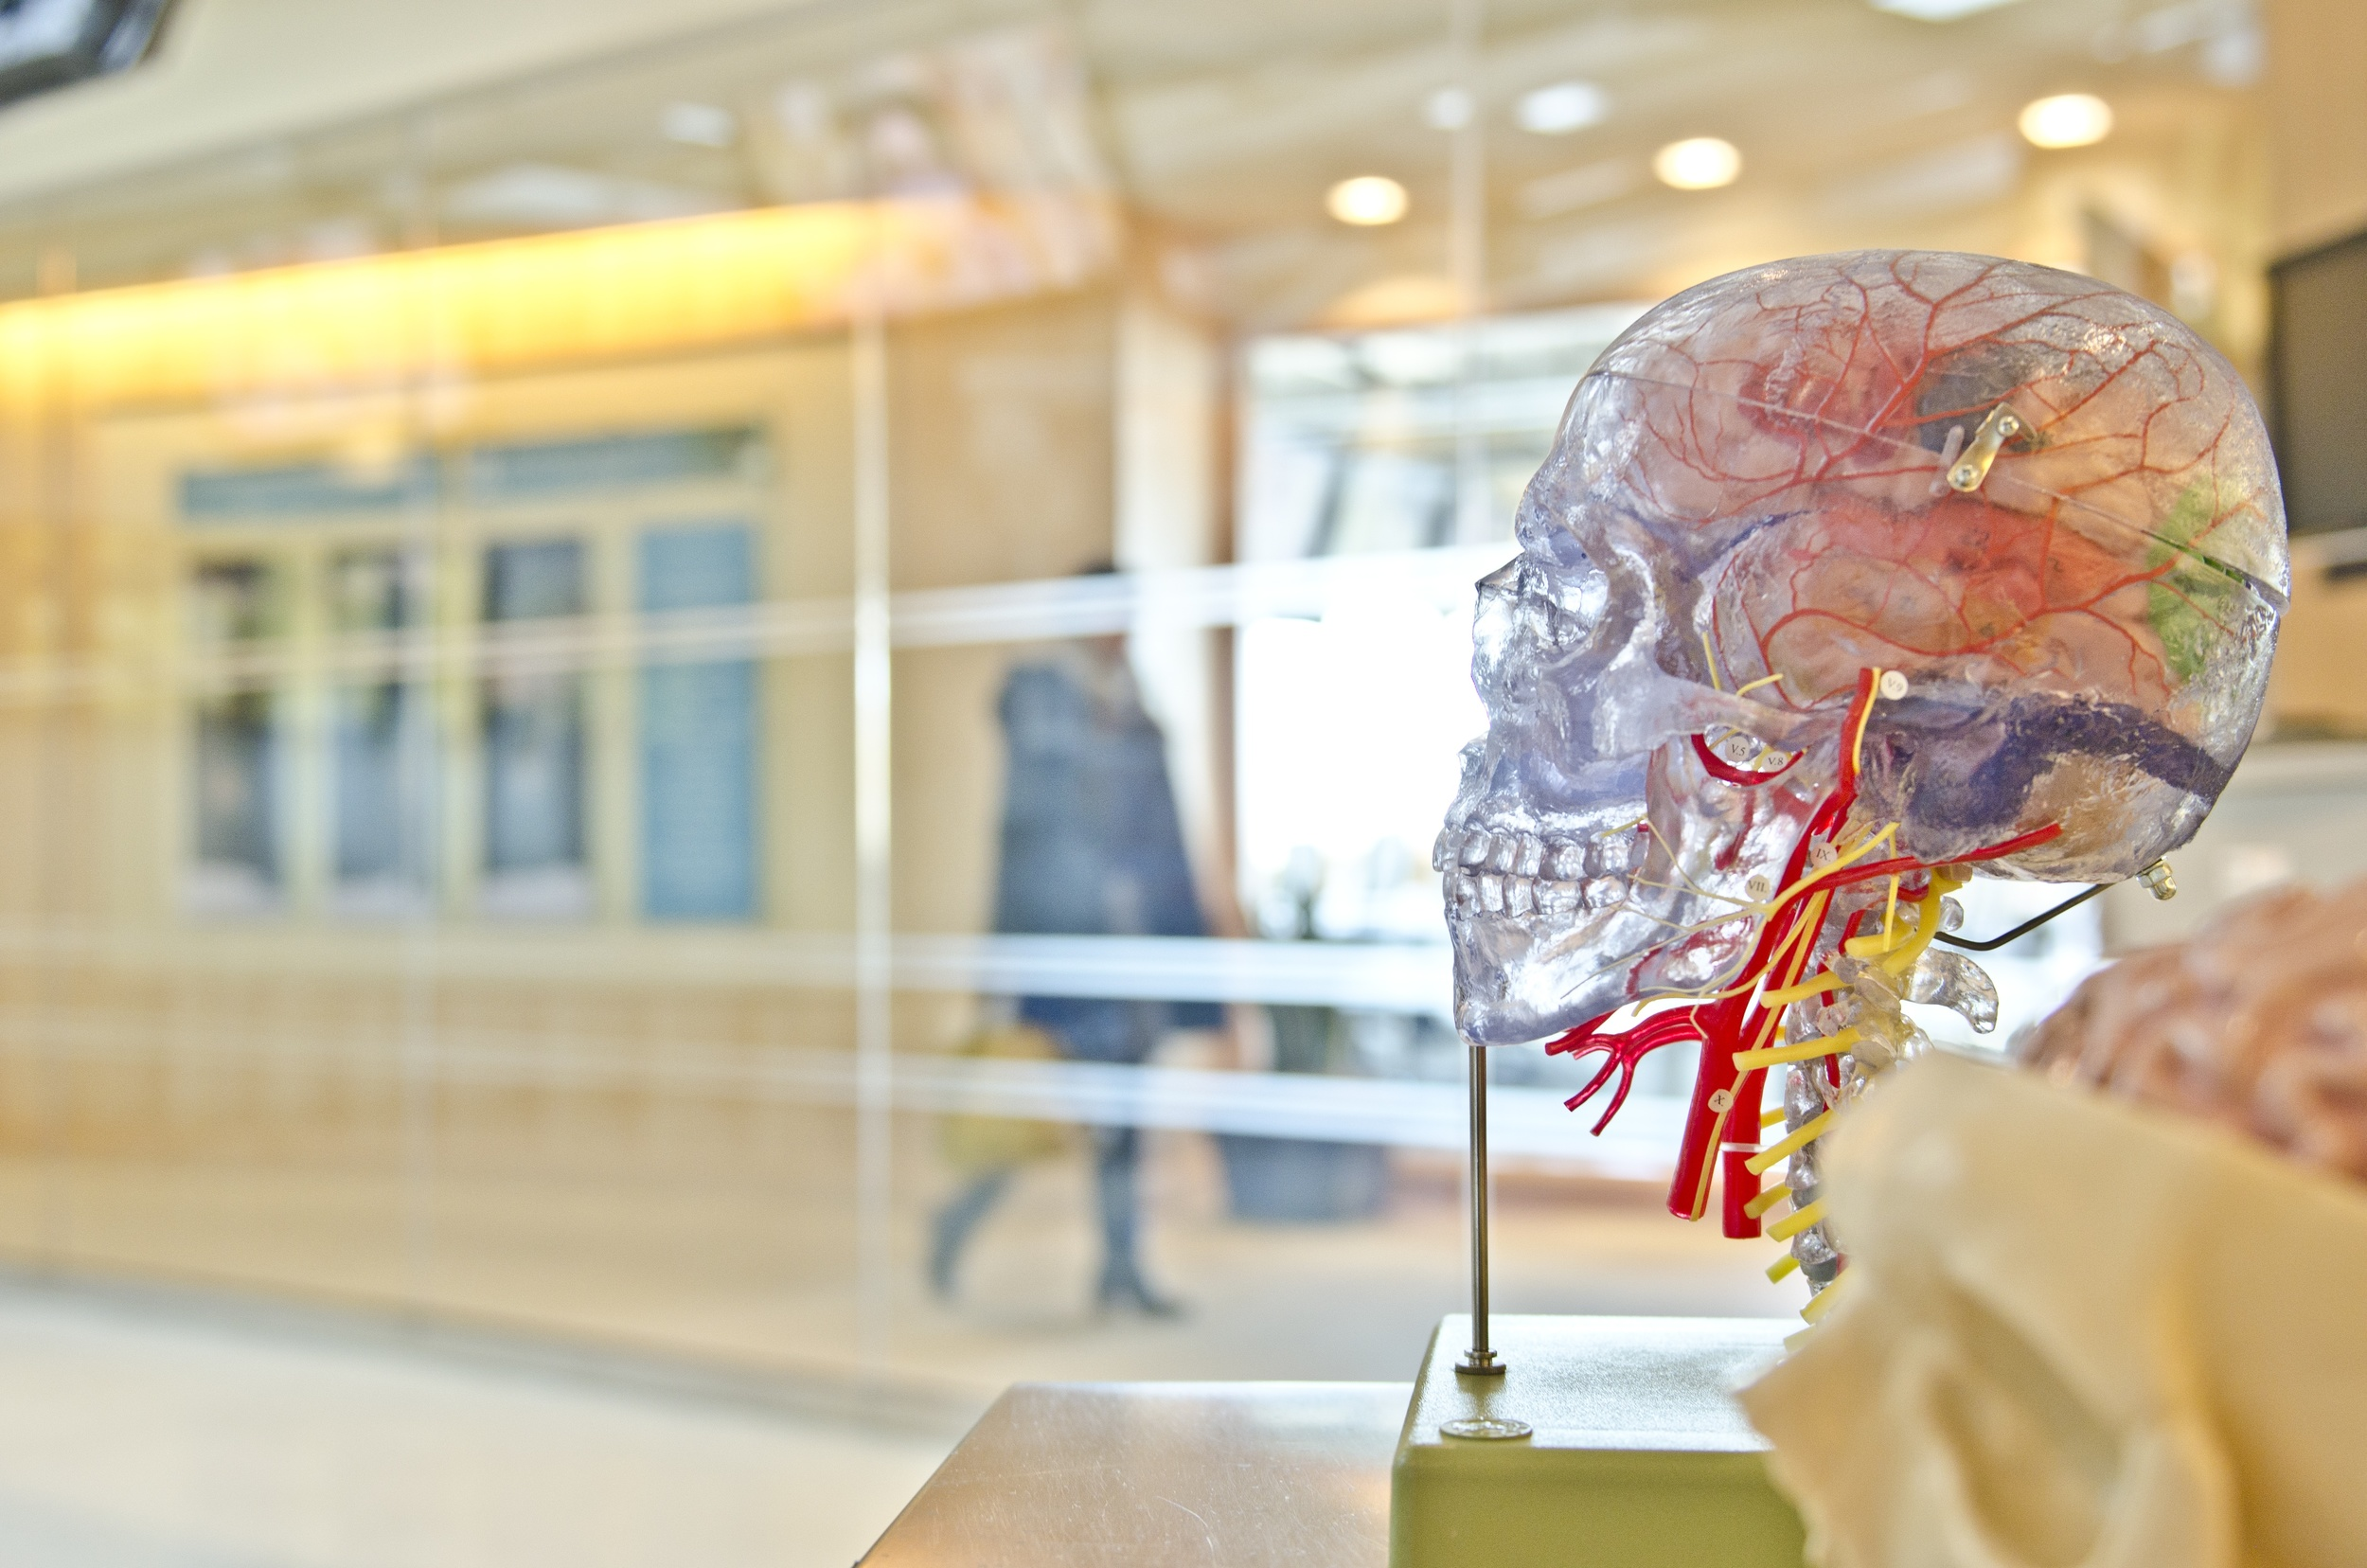 Exercising the brain to exercise. We only have one window of opportunity to do so!